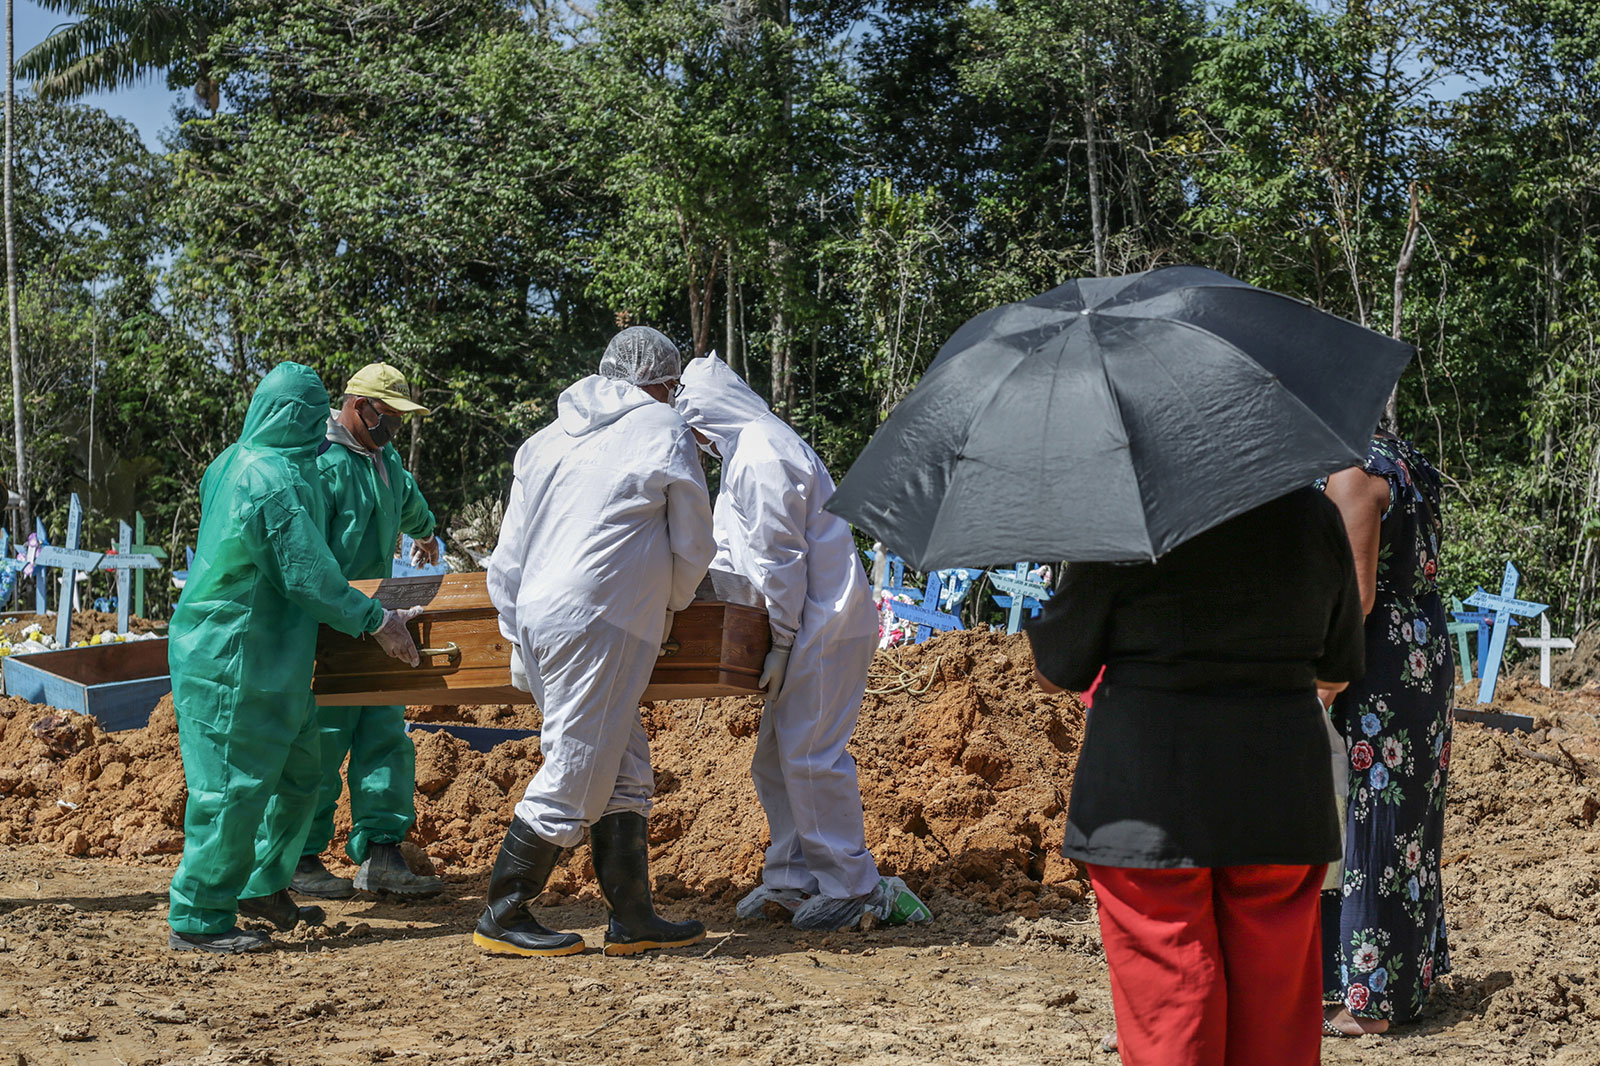 People attend a funeral for a relative who died from coronavirus in Manaus, Brazil.